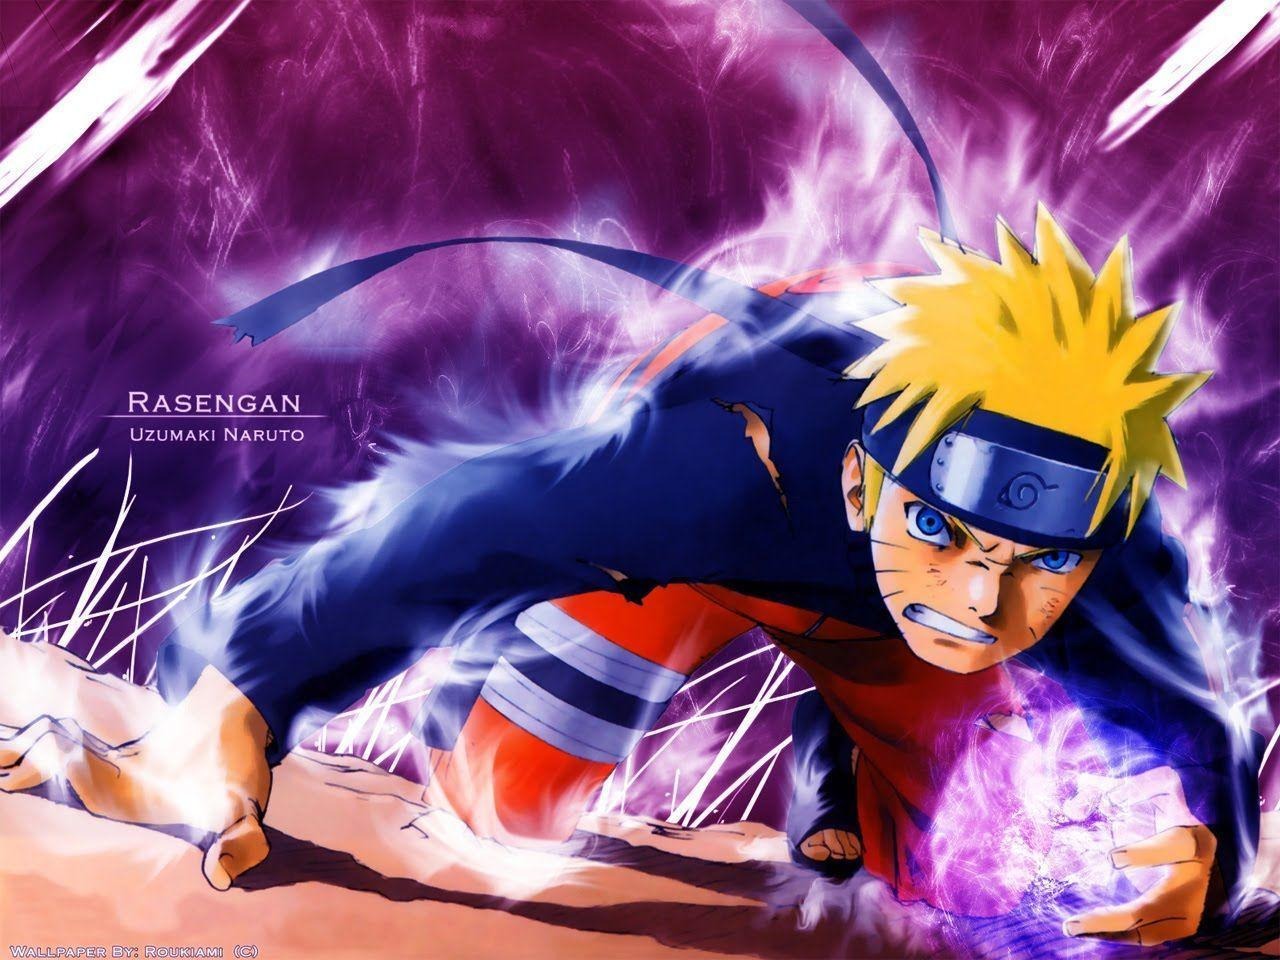 Naruto Vs Sasuke 55 Hd Wallpapers in Cartoons